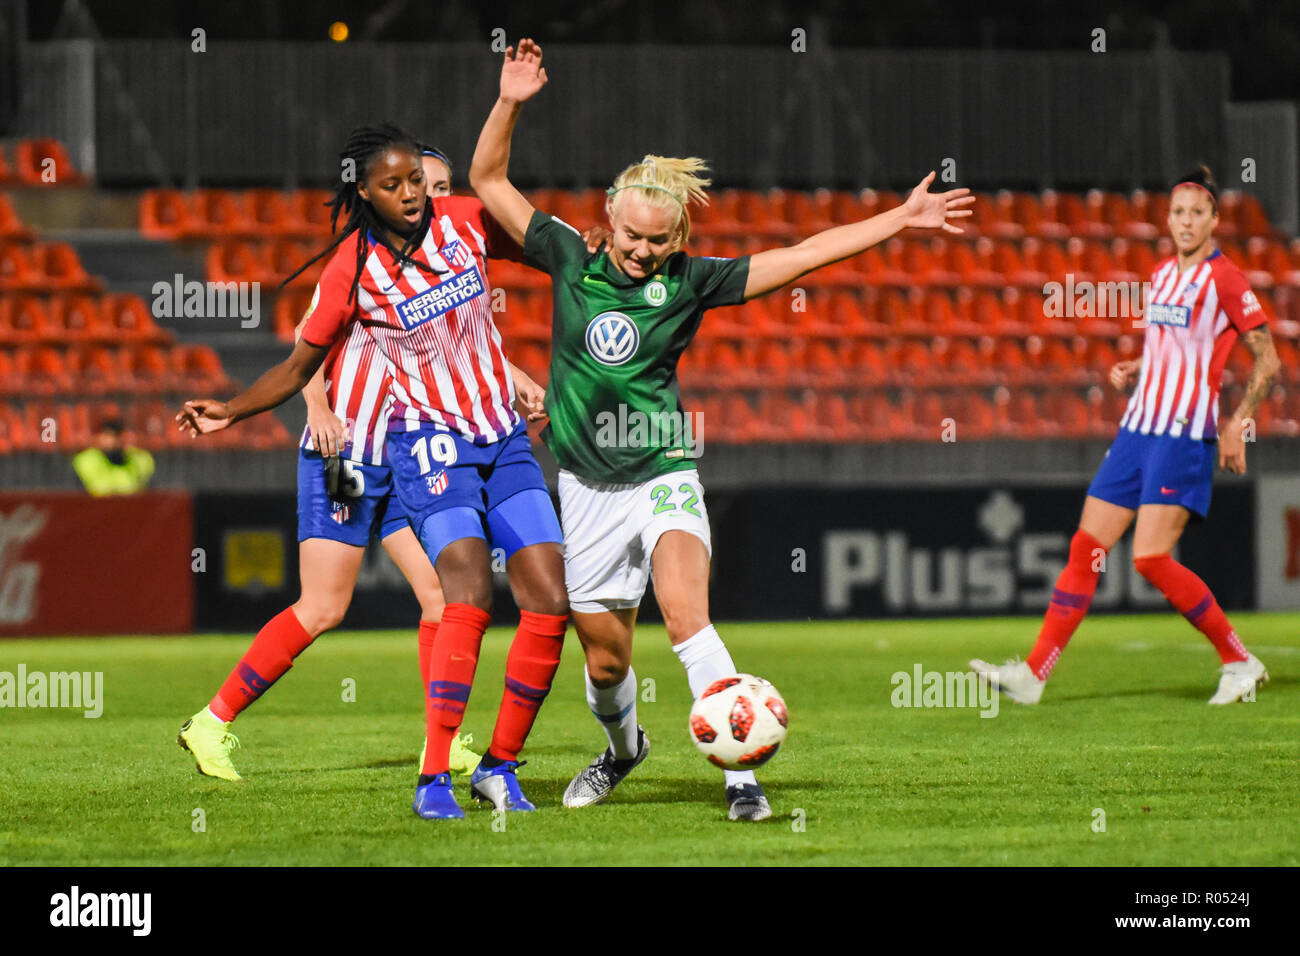 Madrid, Spain. 31st October, 2018.  Players #19 Aissatou TOUNKARA (DF) from ATM and #22 Pernille HARDER (FW) from Wolfsburg fight for the possession of the ball. UEFA Women's Champions League. Round of 16 , 2nd leg. Match between Atlético de Madrid 0 vs 6 Wolfsburg in Madrid, Spain.  Pedro Ros Sogorb/Alamy Live News - Stock Image